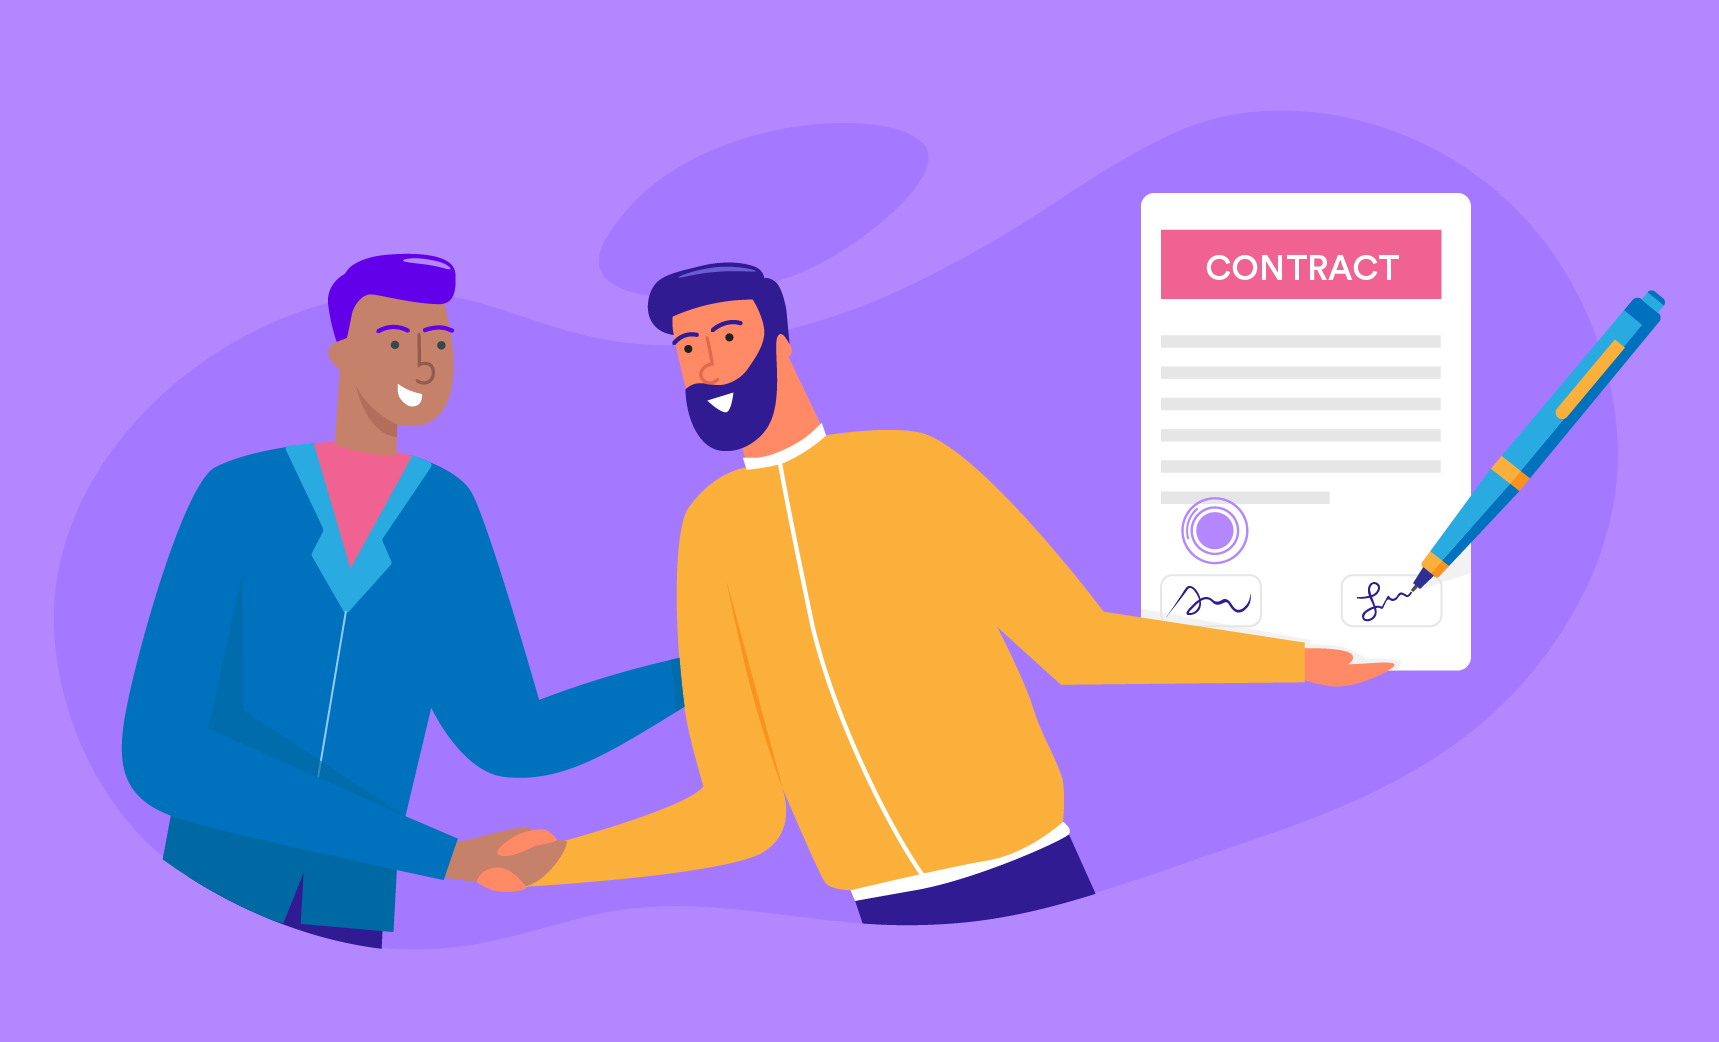 The difference between an agreement and a contract